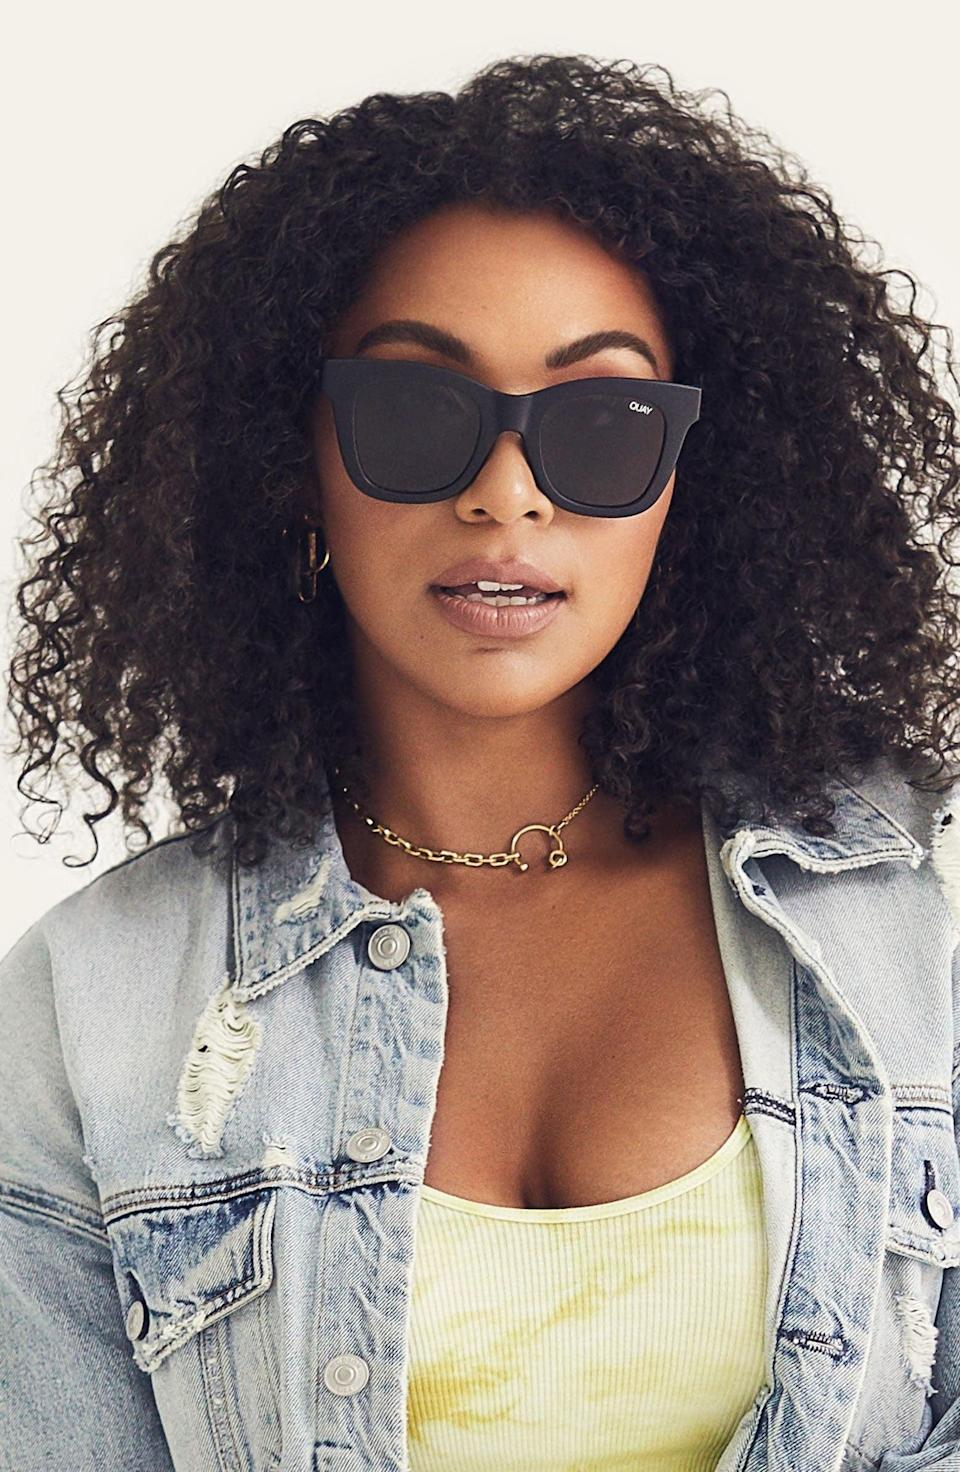 <p>Sometimes, you want a big lens. Maybe you've had a long night out, maybe it's super sunny, and maybe you just like the style. Block out the haters with these big <span>Quay Australia After Hours Square Sunglasses</span> ($55).</p>